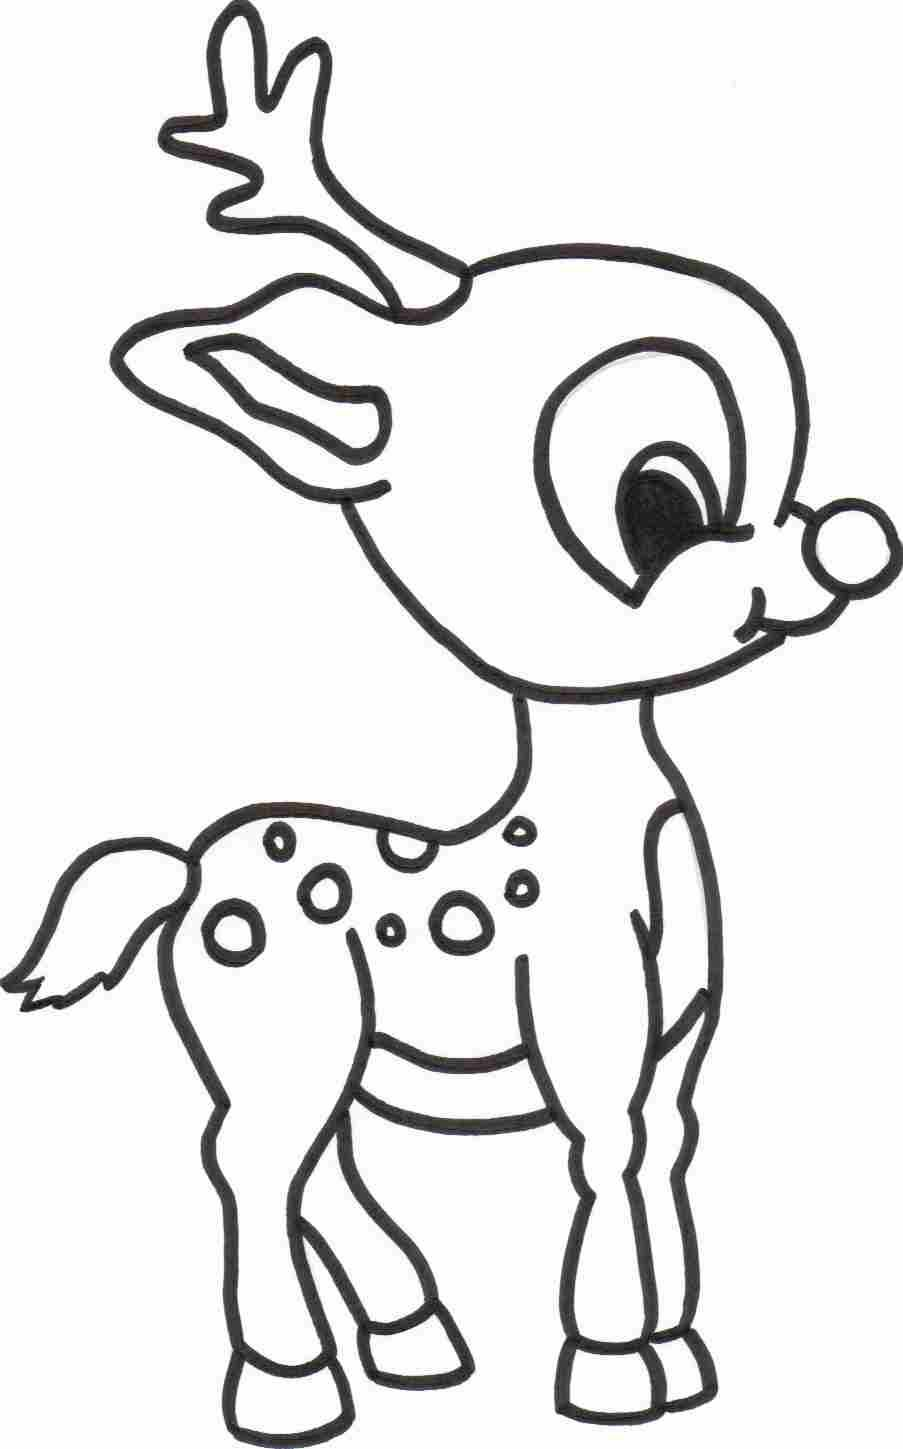 christmas reindeer coloring pages Free Printable Reindeer Coloring Pages For Kids | sketch  christmas reindeer coloring pages